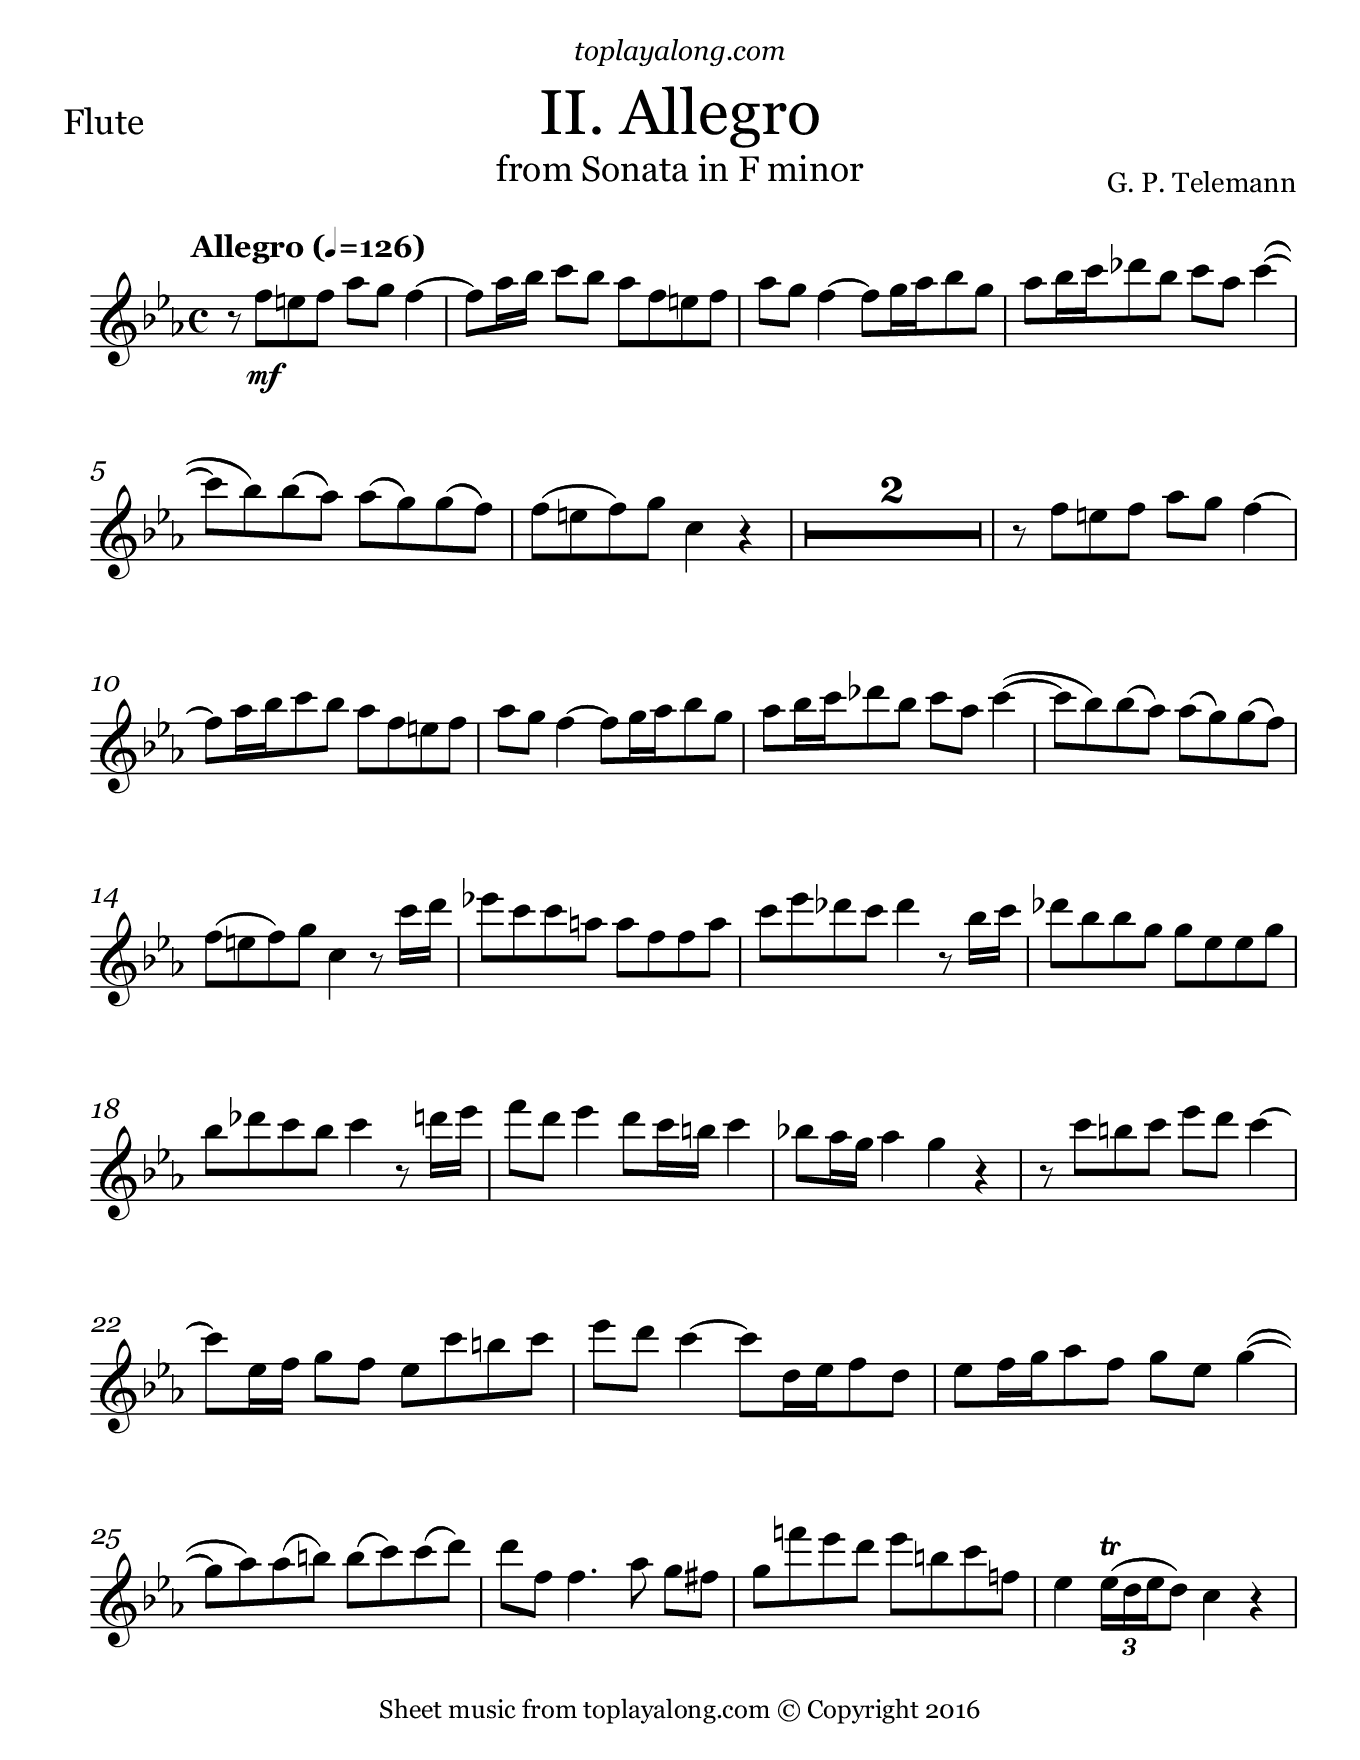 Sonata in F minor (II. Allegro) by Telemann. Sheet music for Flute, page 1.